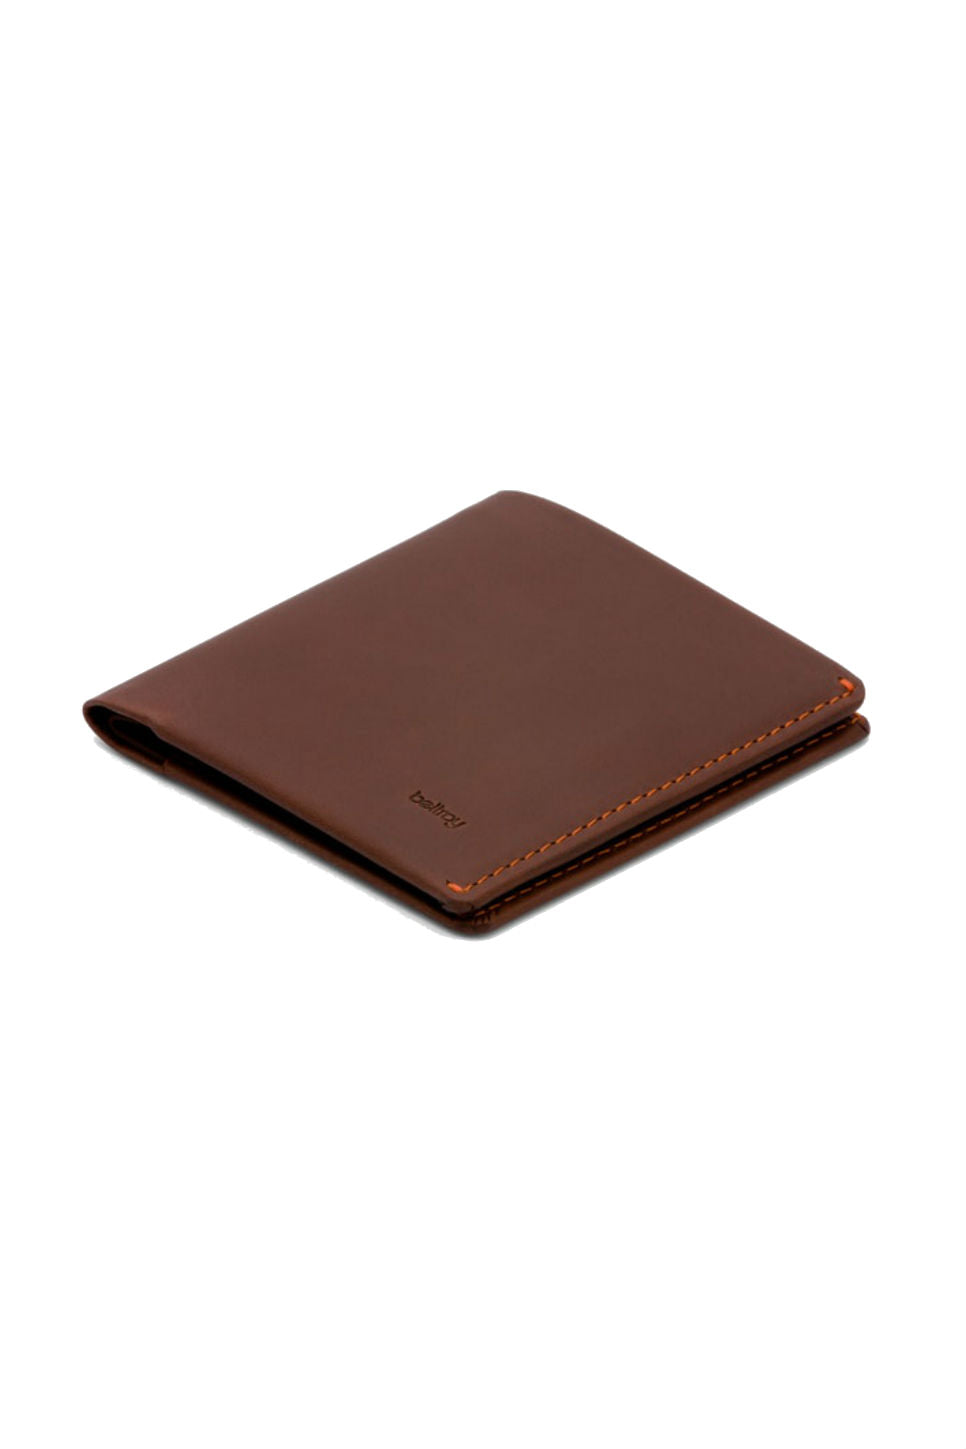 Bellroy - RFID Note Sleeve - Cocoa